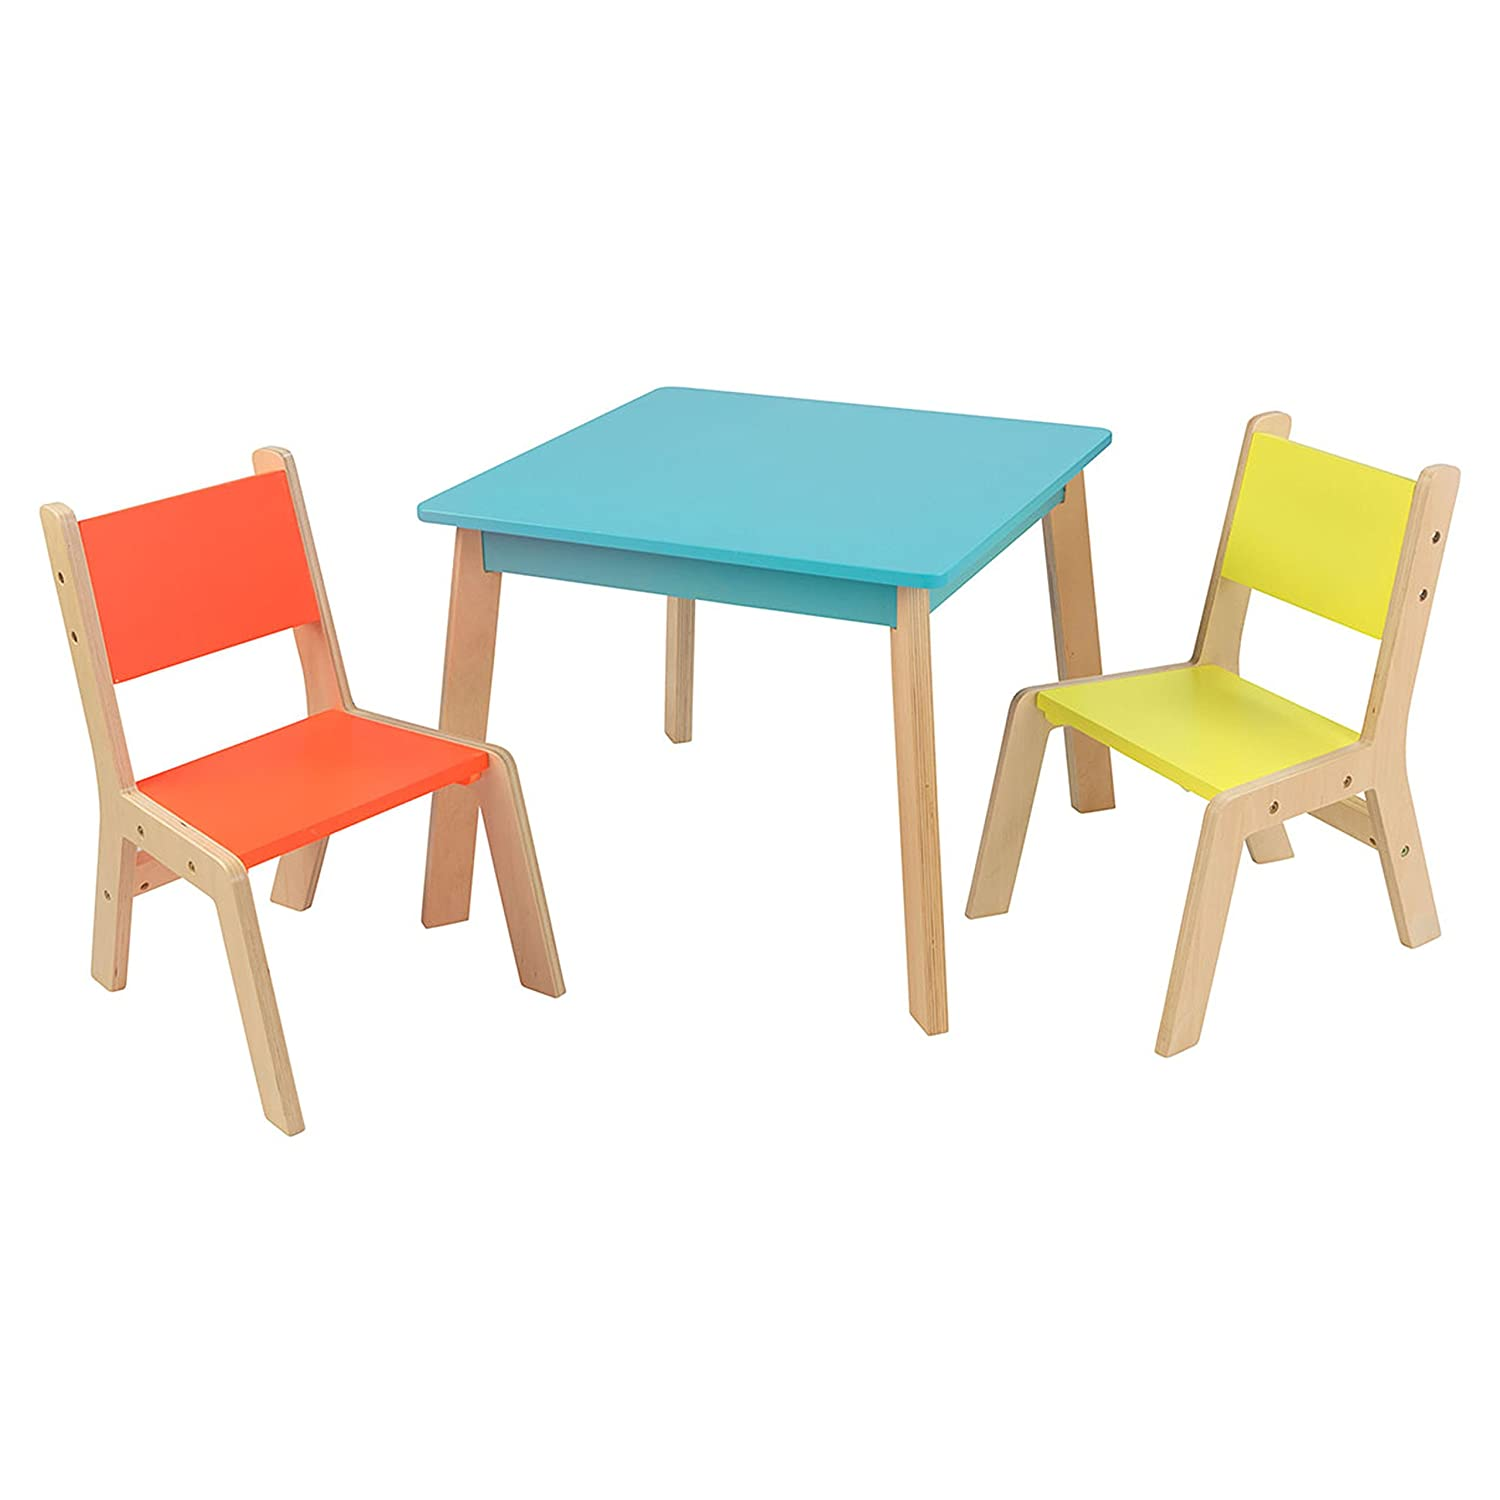 KidKraft Highlighter Modern Table and Chair Set Table \u0026 Chair Sets - Amazon Canada  sc 1 st  Amazon.ca & KidKraft Highlighter Modern Table and Chair Set Table \u0026 Chair Sets ...